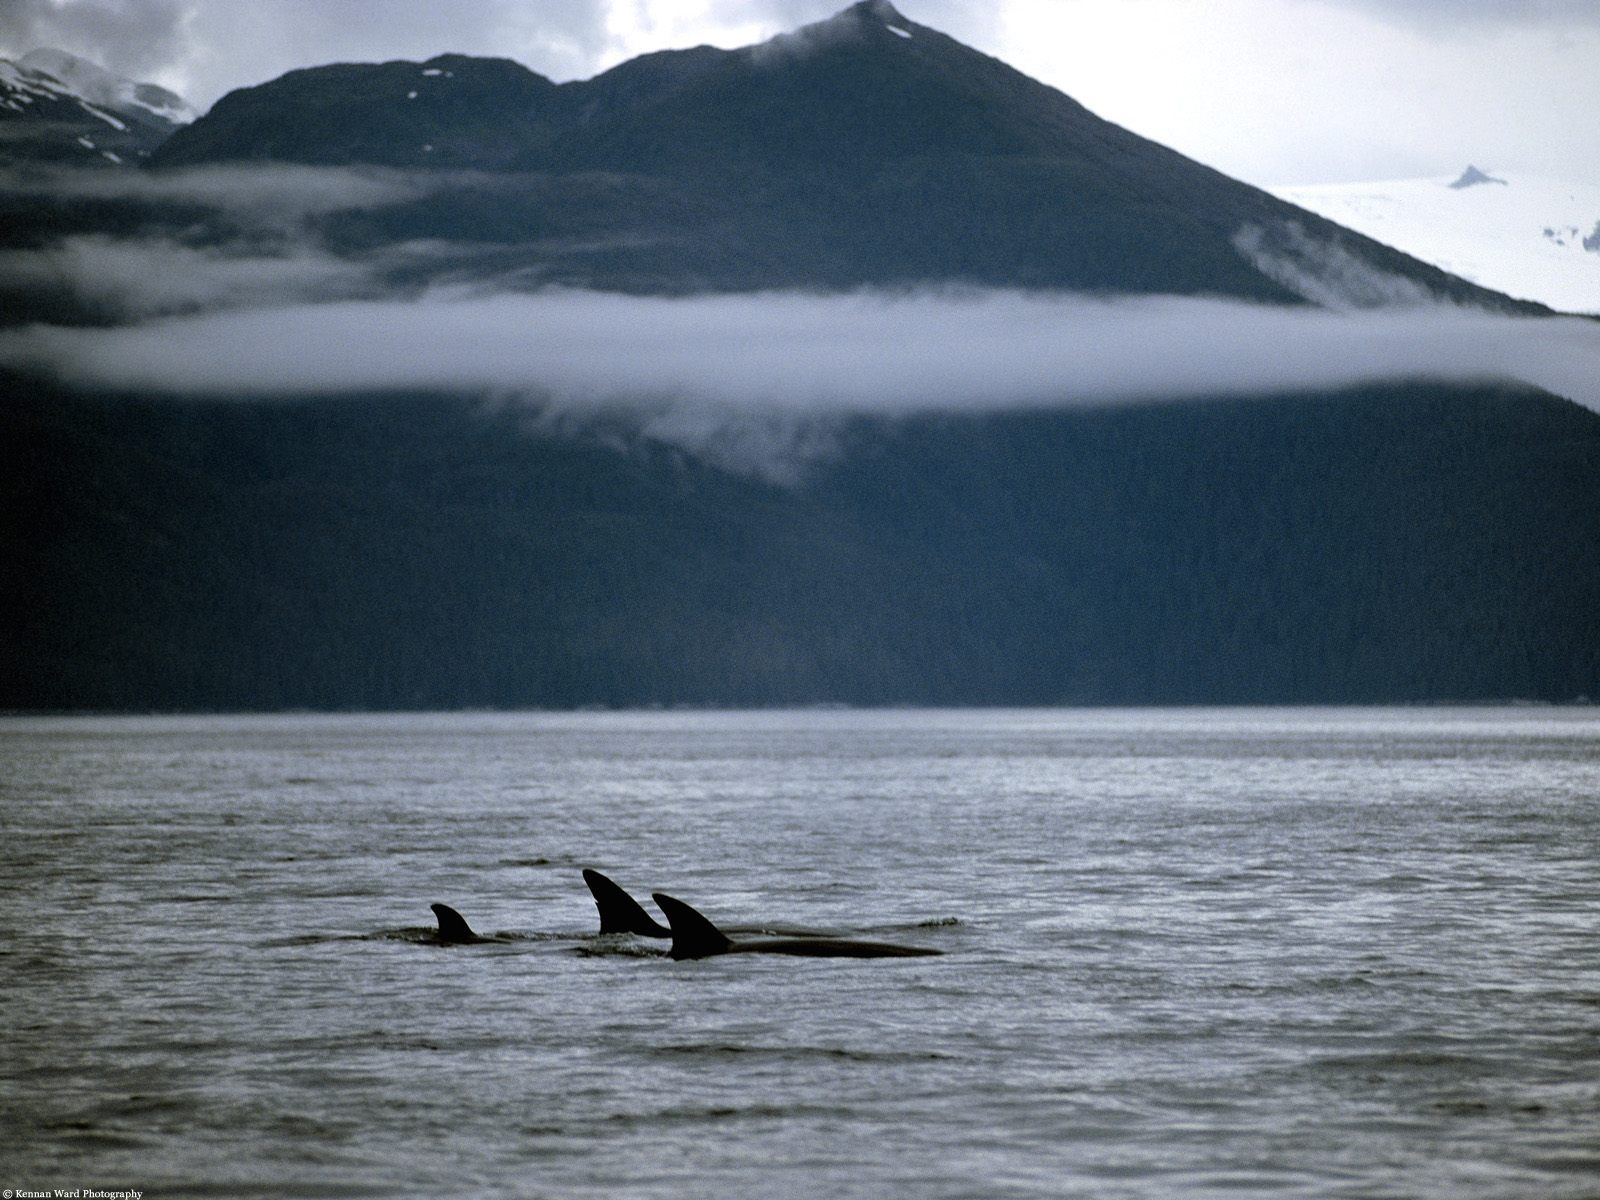 Orca whales family wallpapers orca whales family stock photos image orca whales family wallpapers and stock photos thecheapjerseys Images